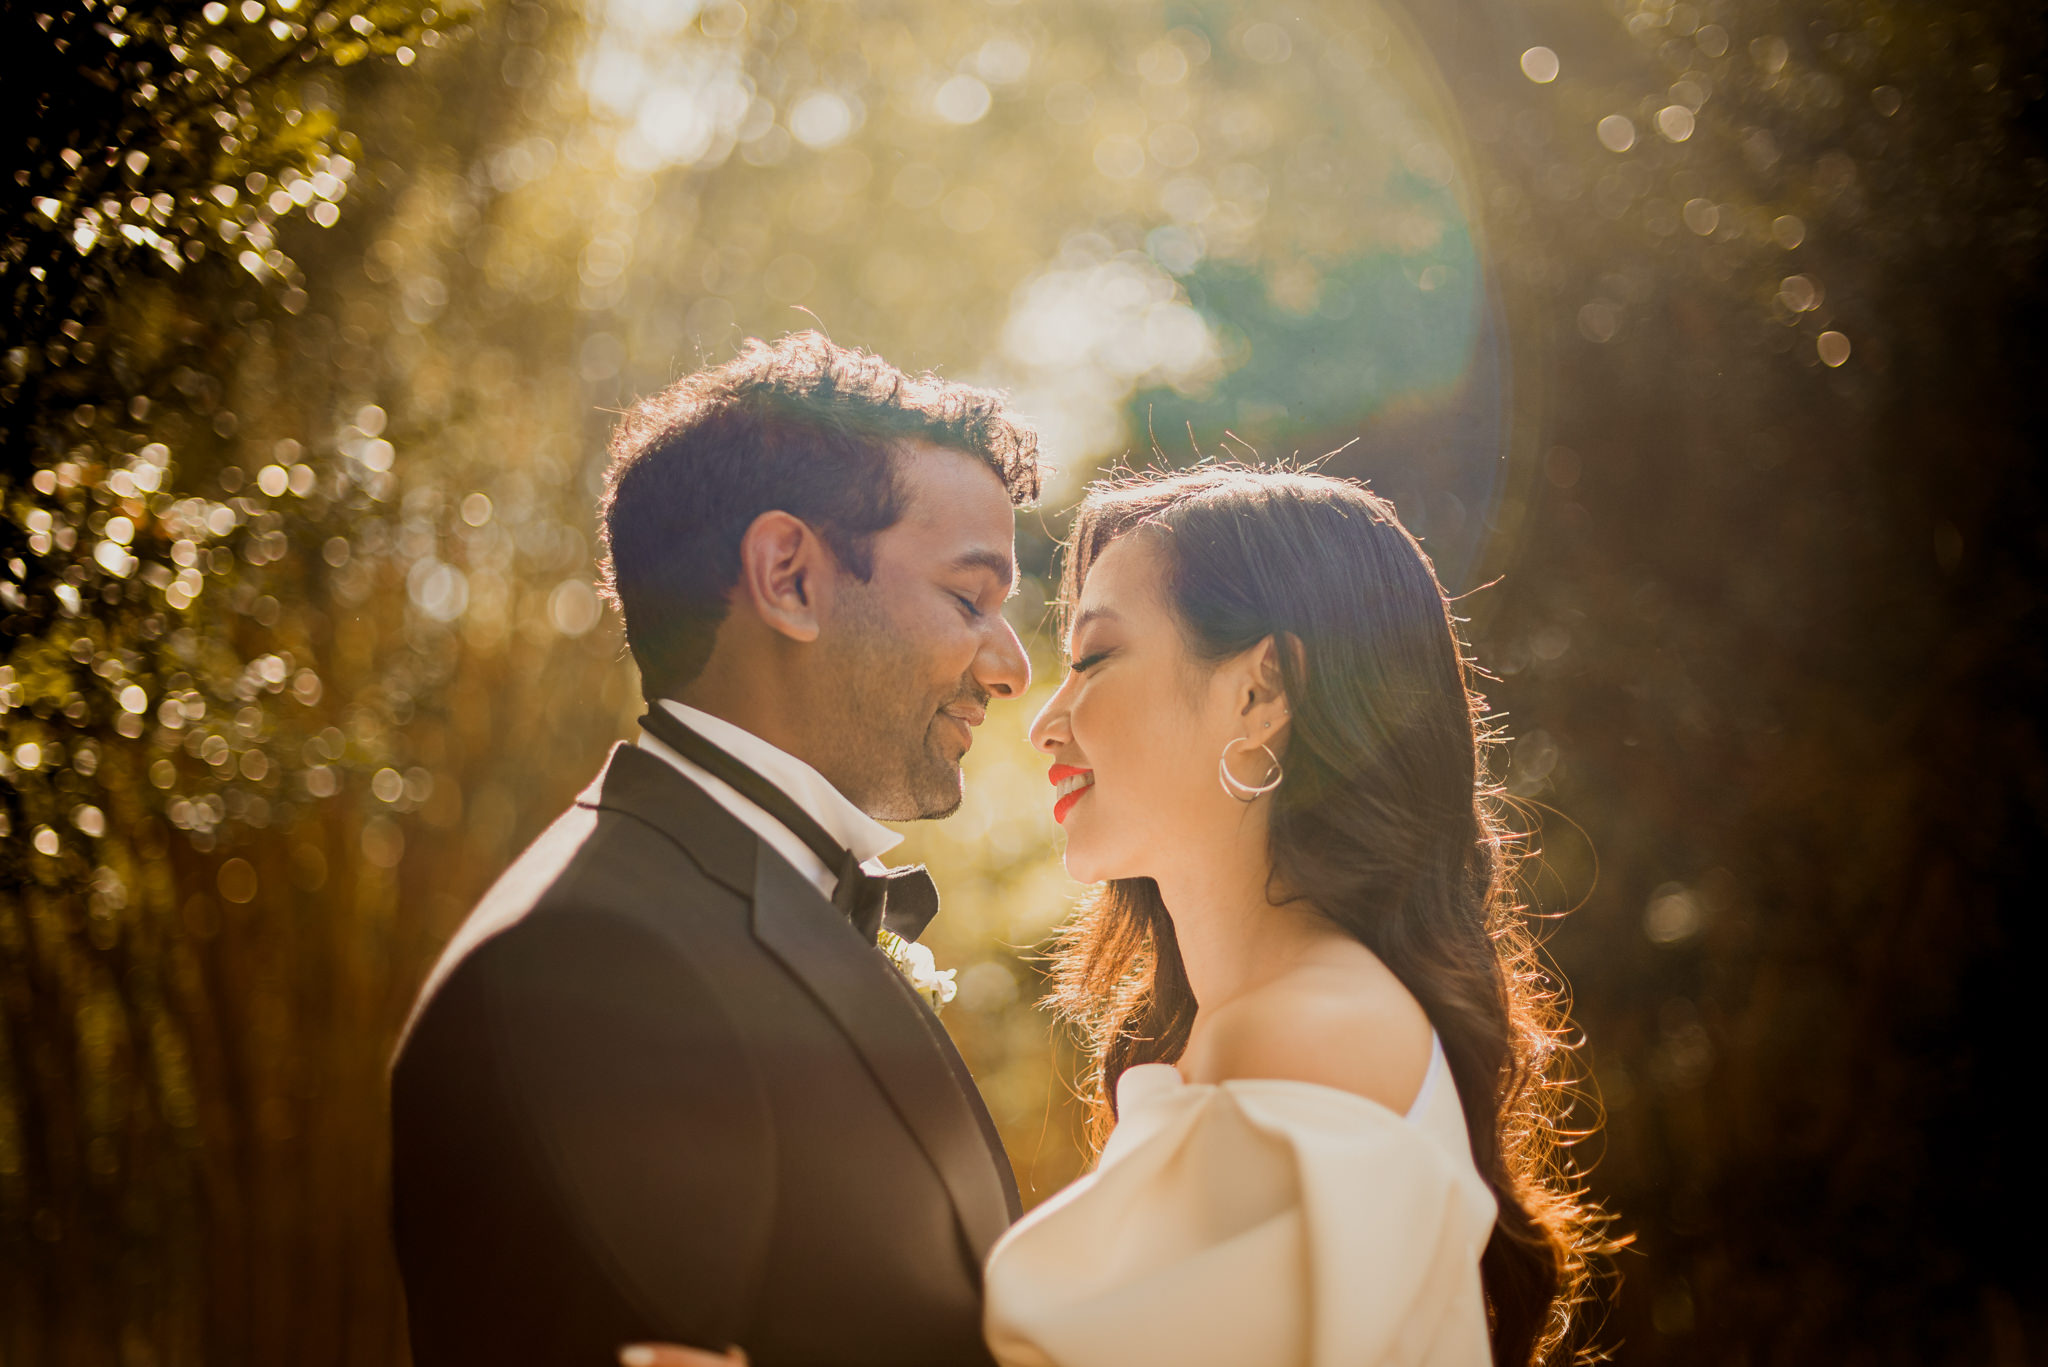 Asian bride and Indian groom closing their eyes and putting their heads together